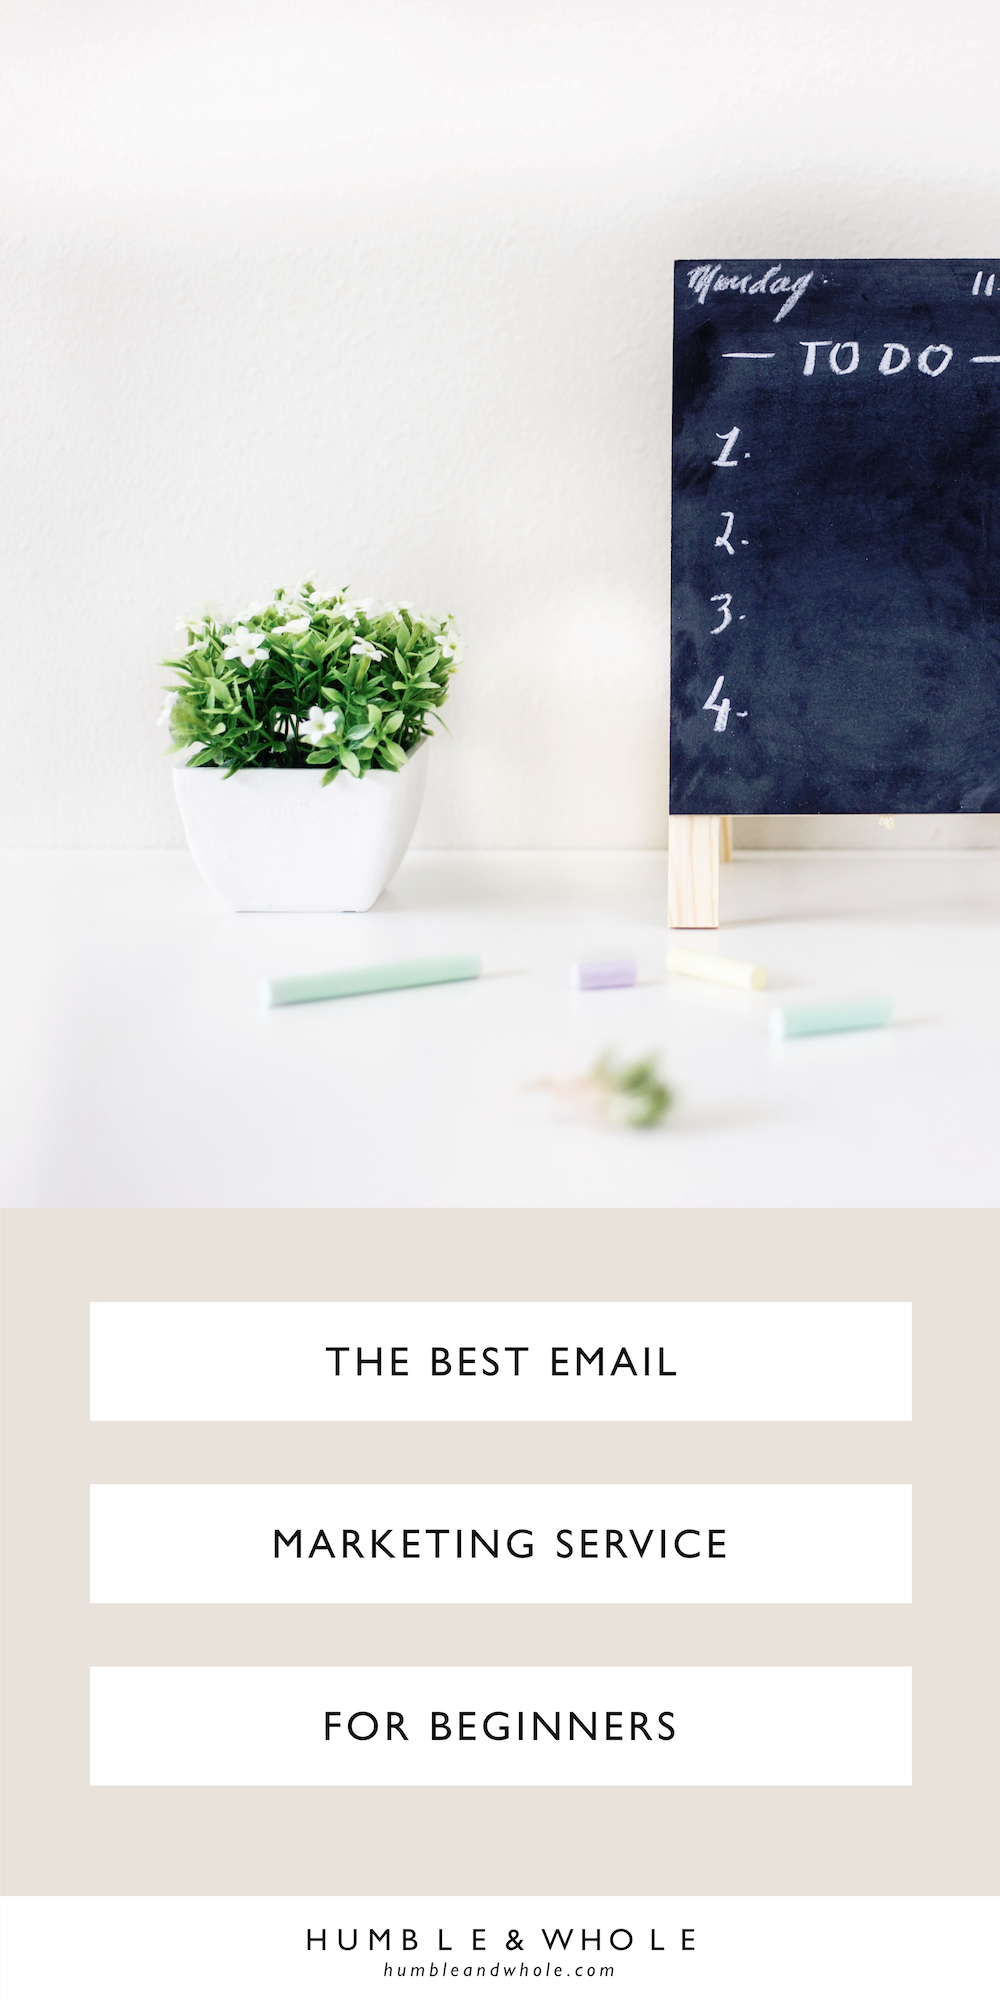 When it comes to email marketing, you want to use an email marketing platform that is simple, easy-to-use, and has all the features you need. Click through to read the best email marketing service for beginners.